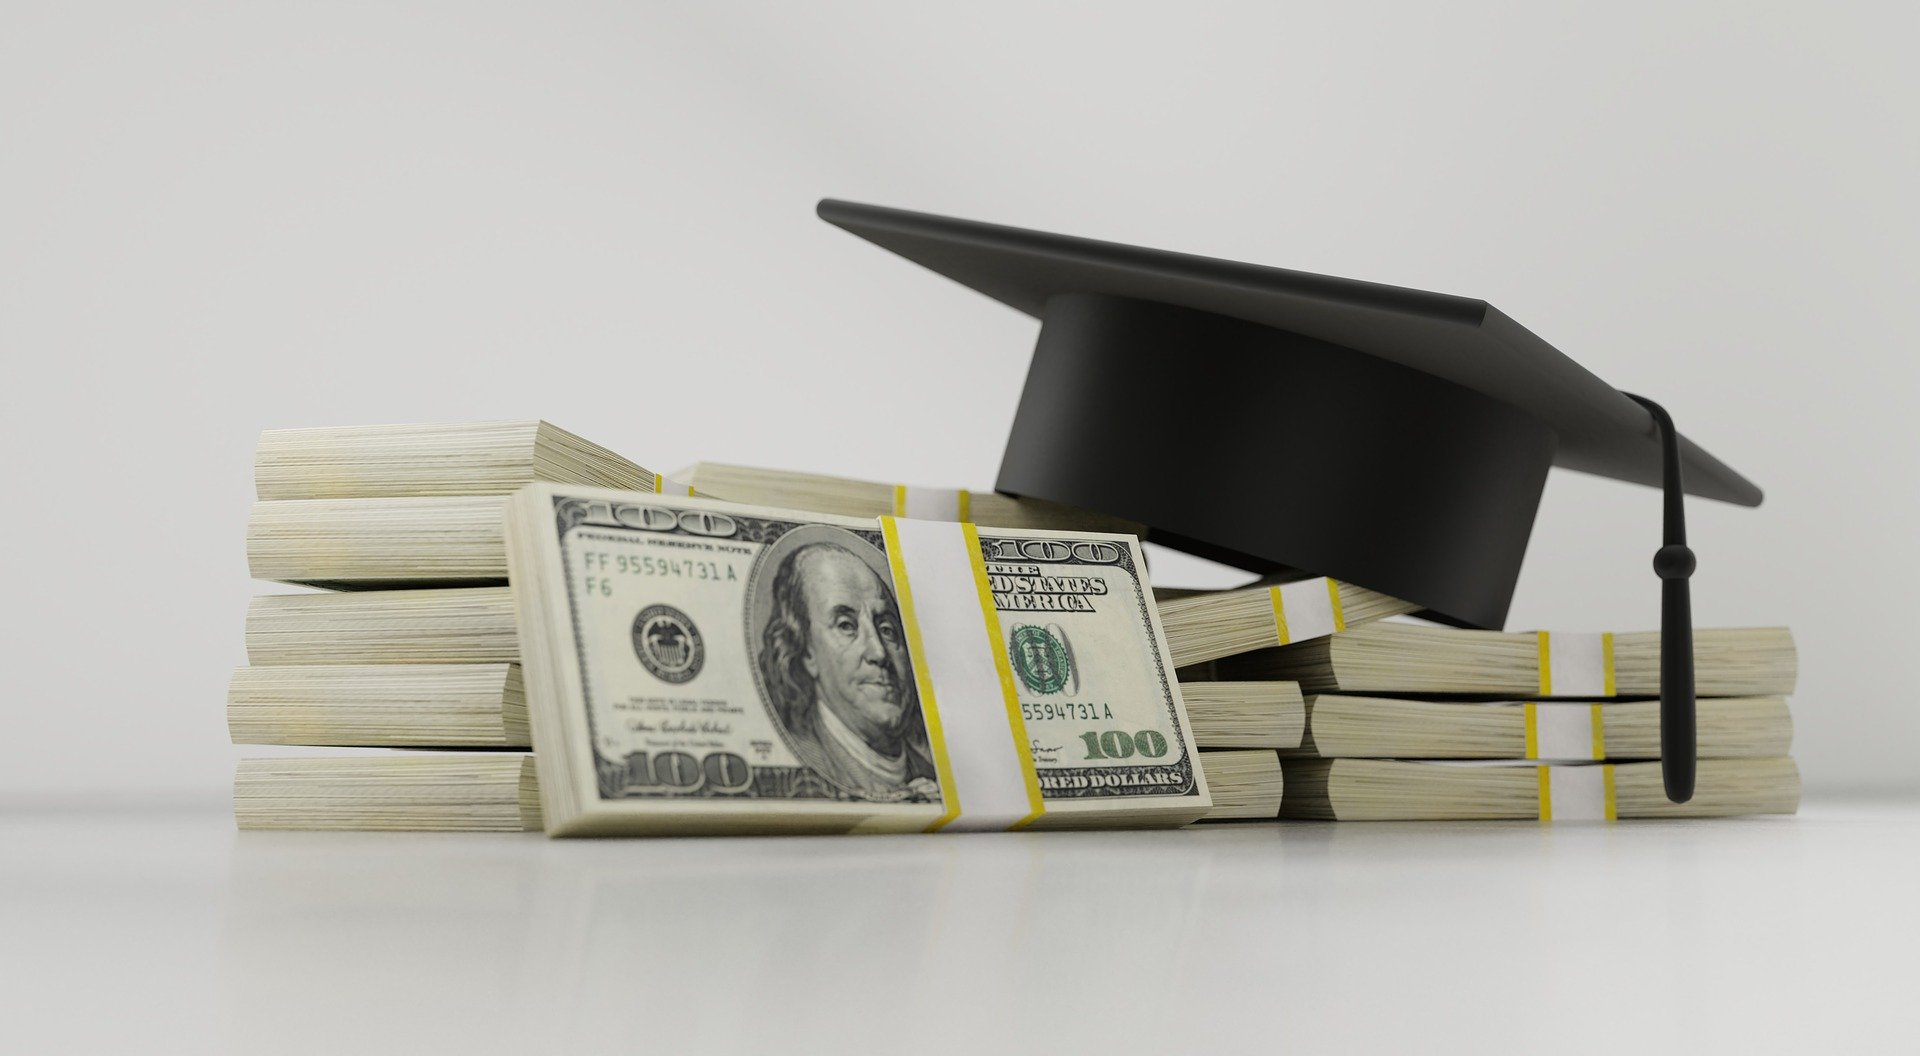 An image of stacks of money and a mortarboard (graduation) cap.